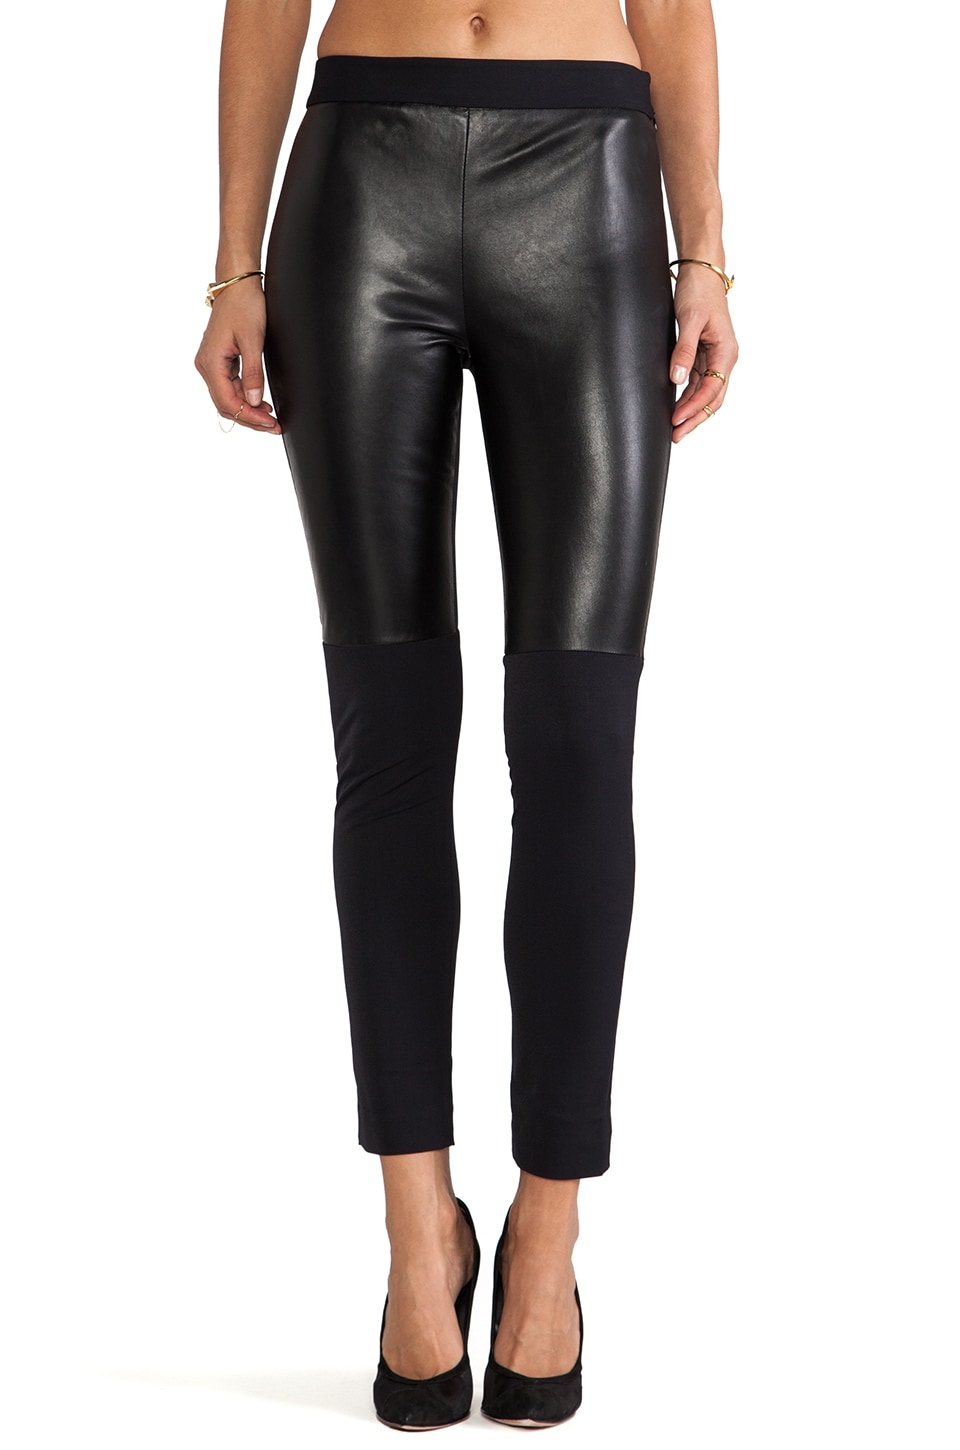 MILLY Italian Doubleweave Stretch Bi Front Leather Panel Pant in Black